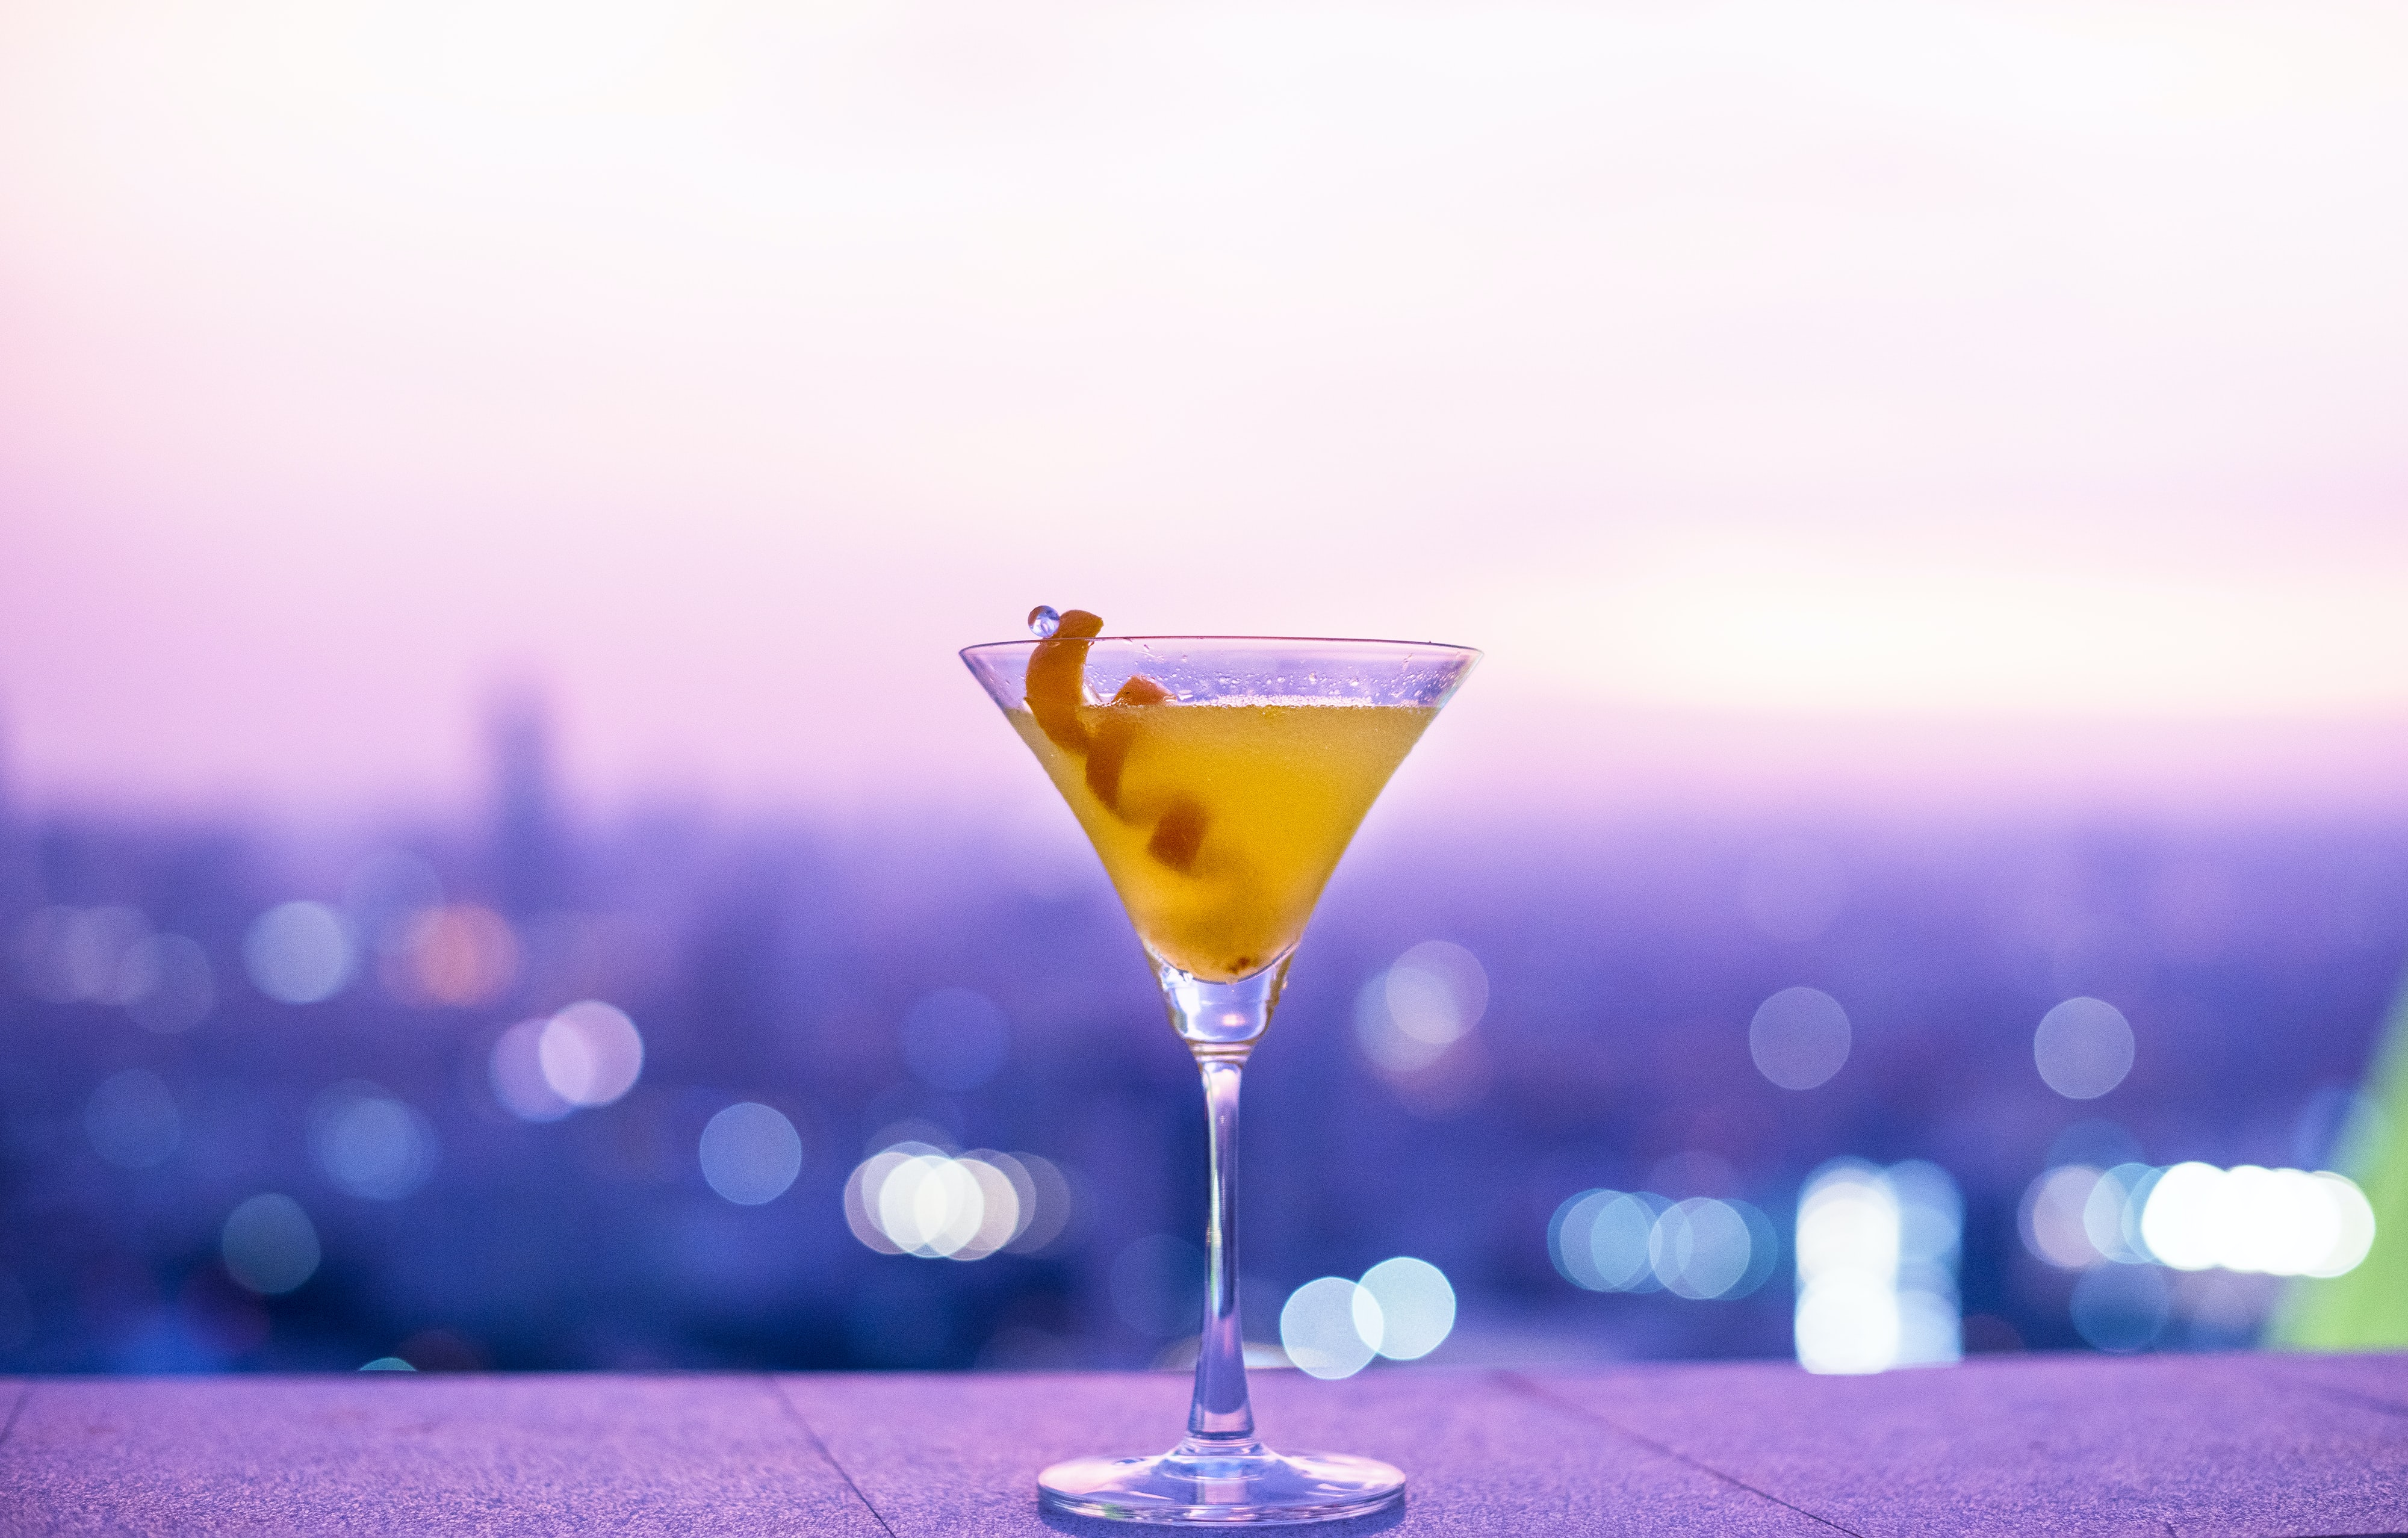 clear martini glass with yellow liquid